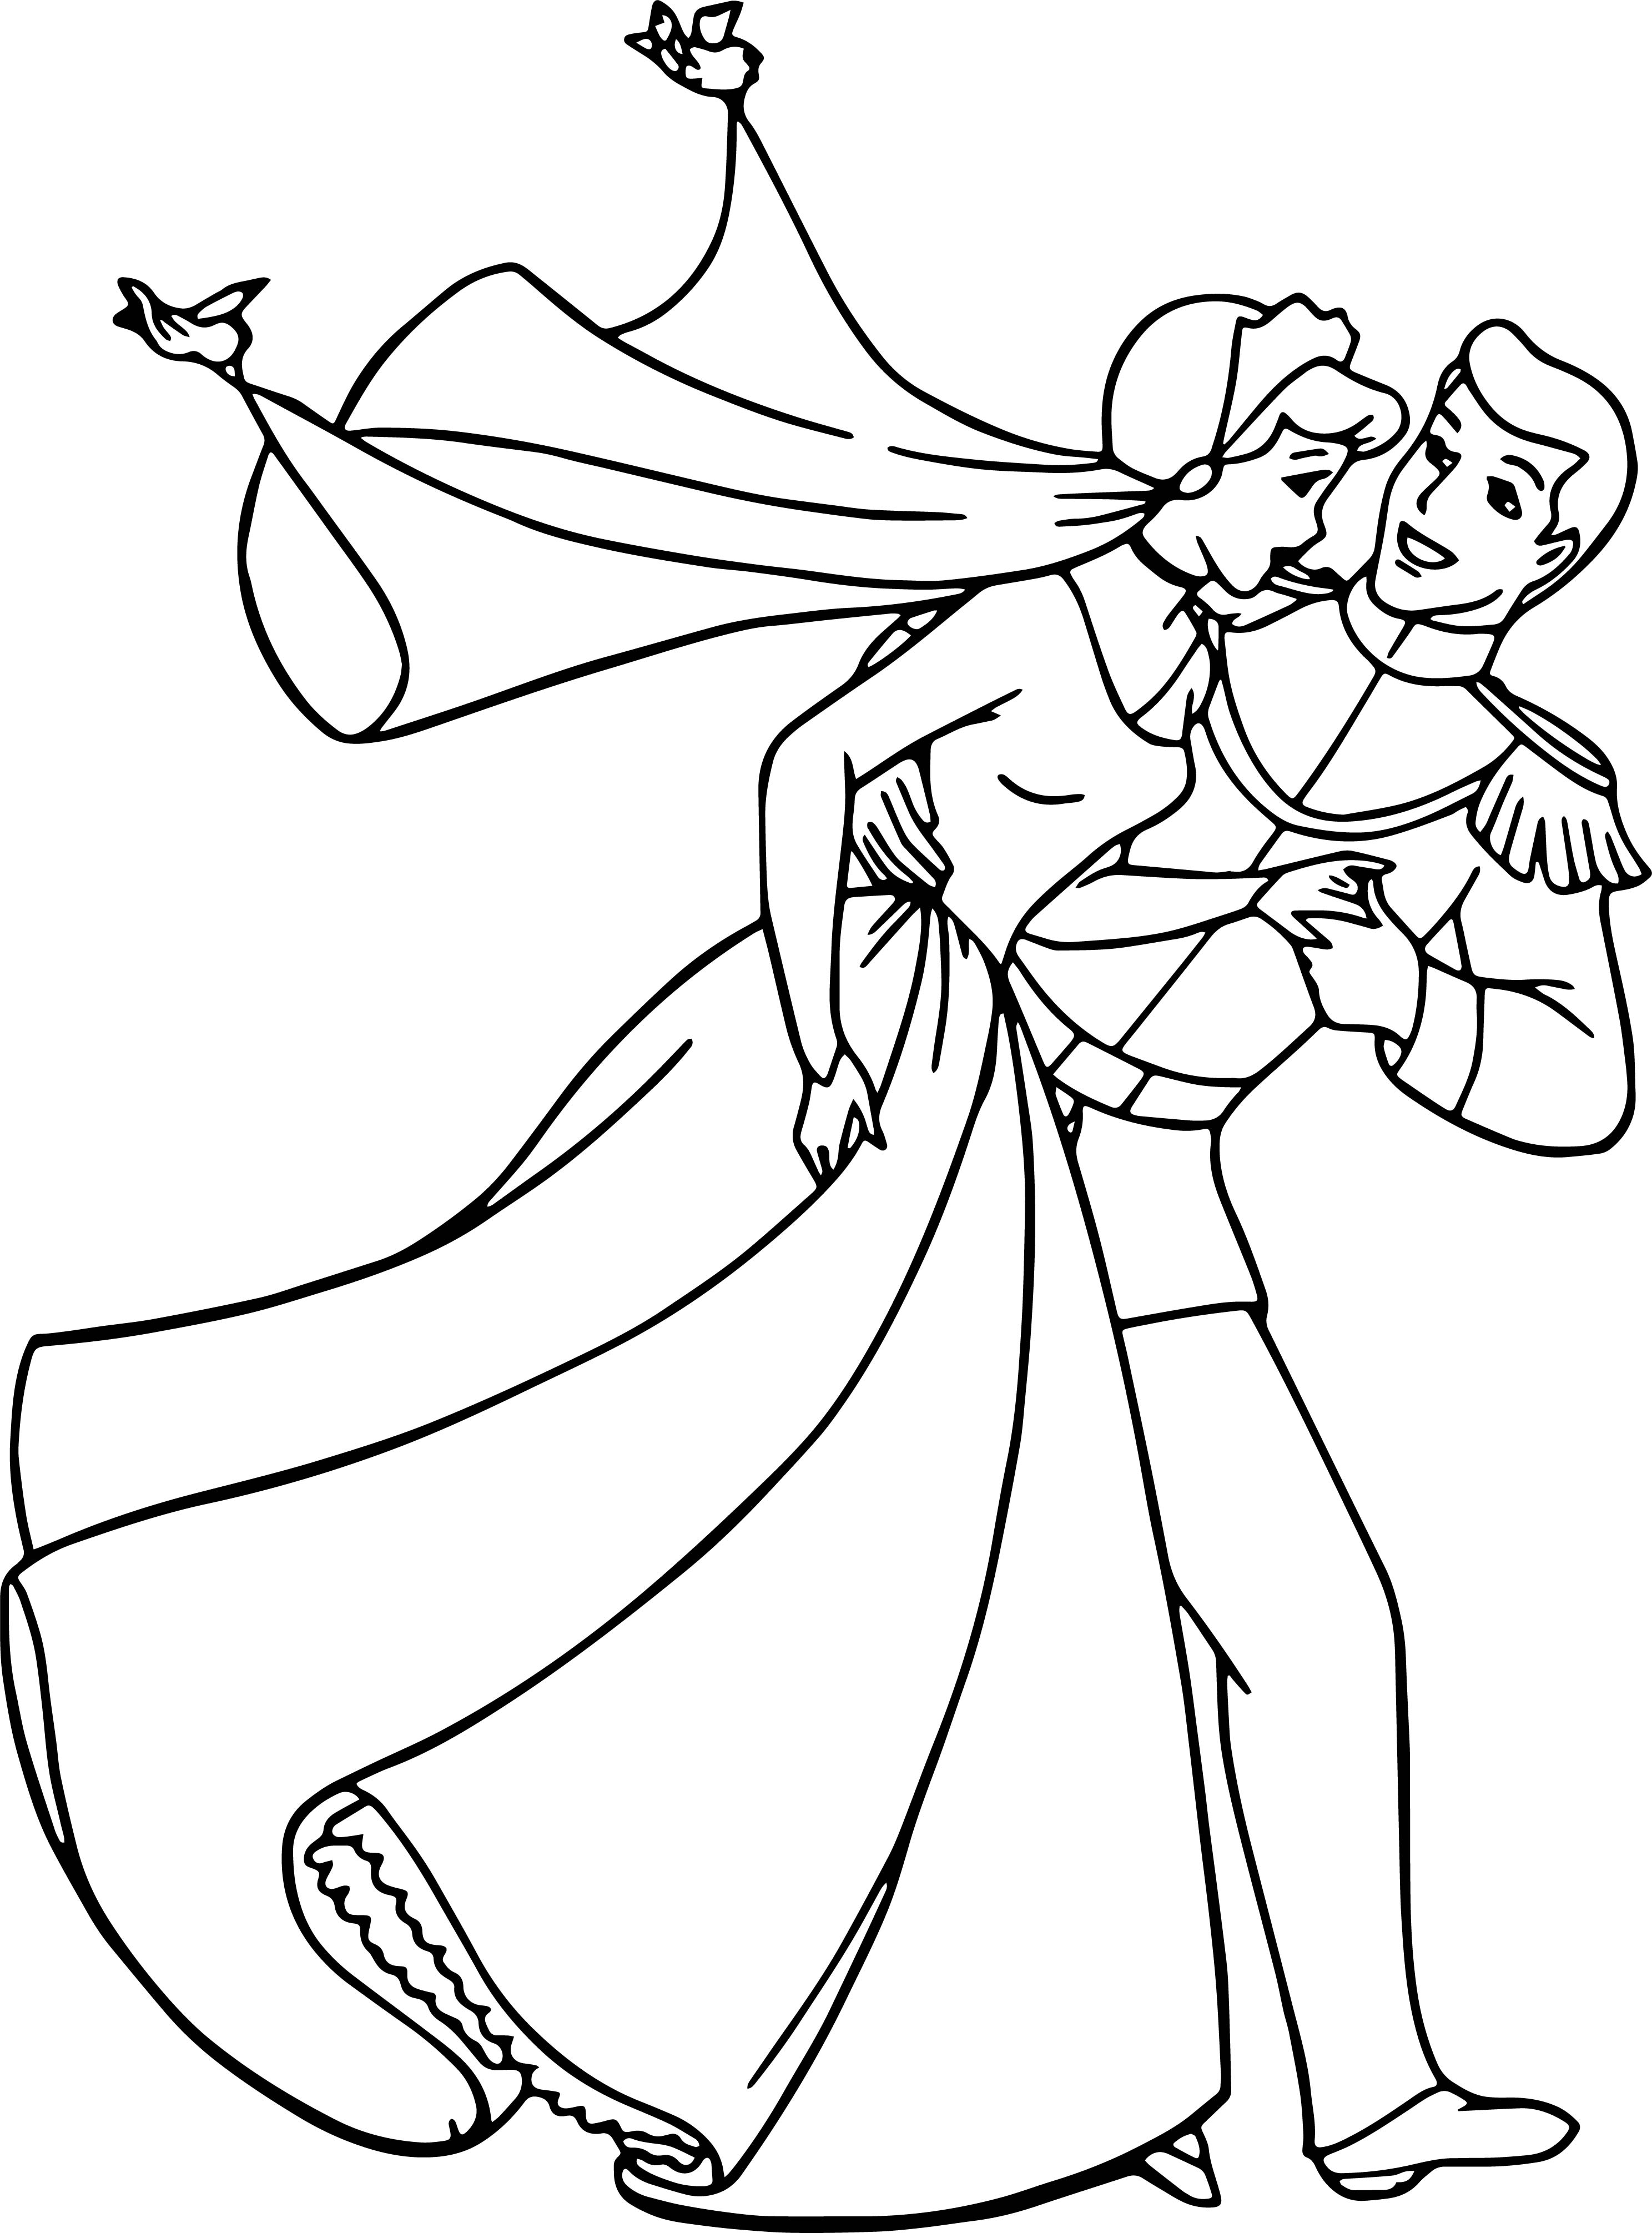 Cinderella And Prince Charming Run Coloring Pages ...